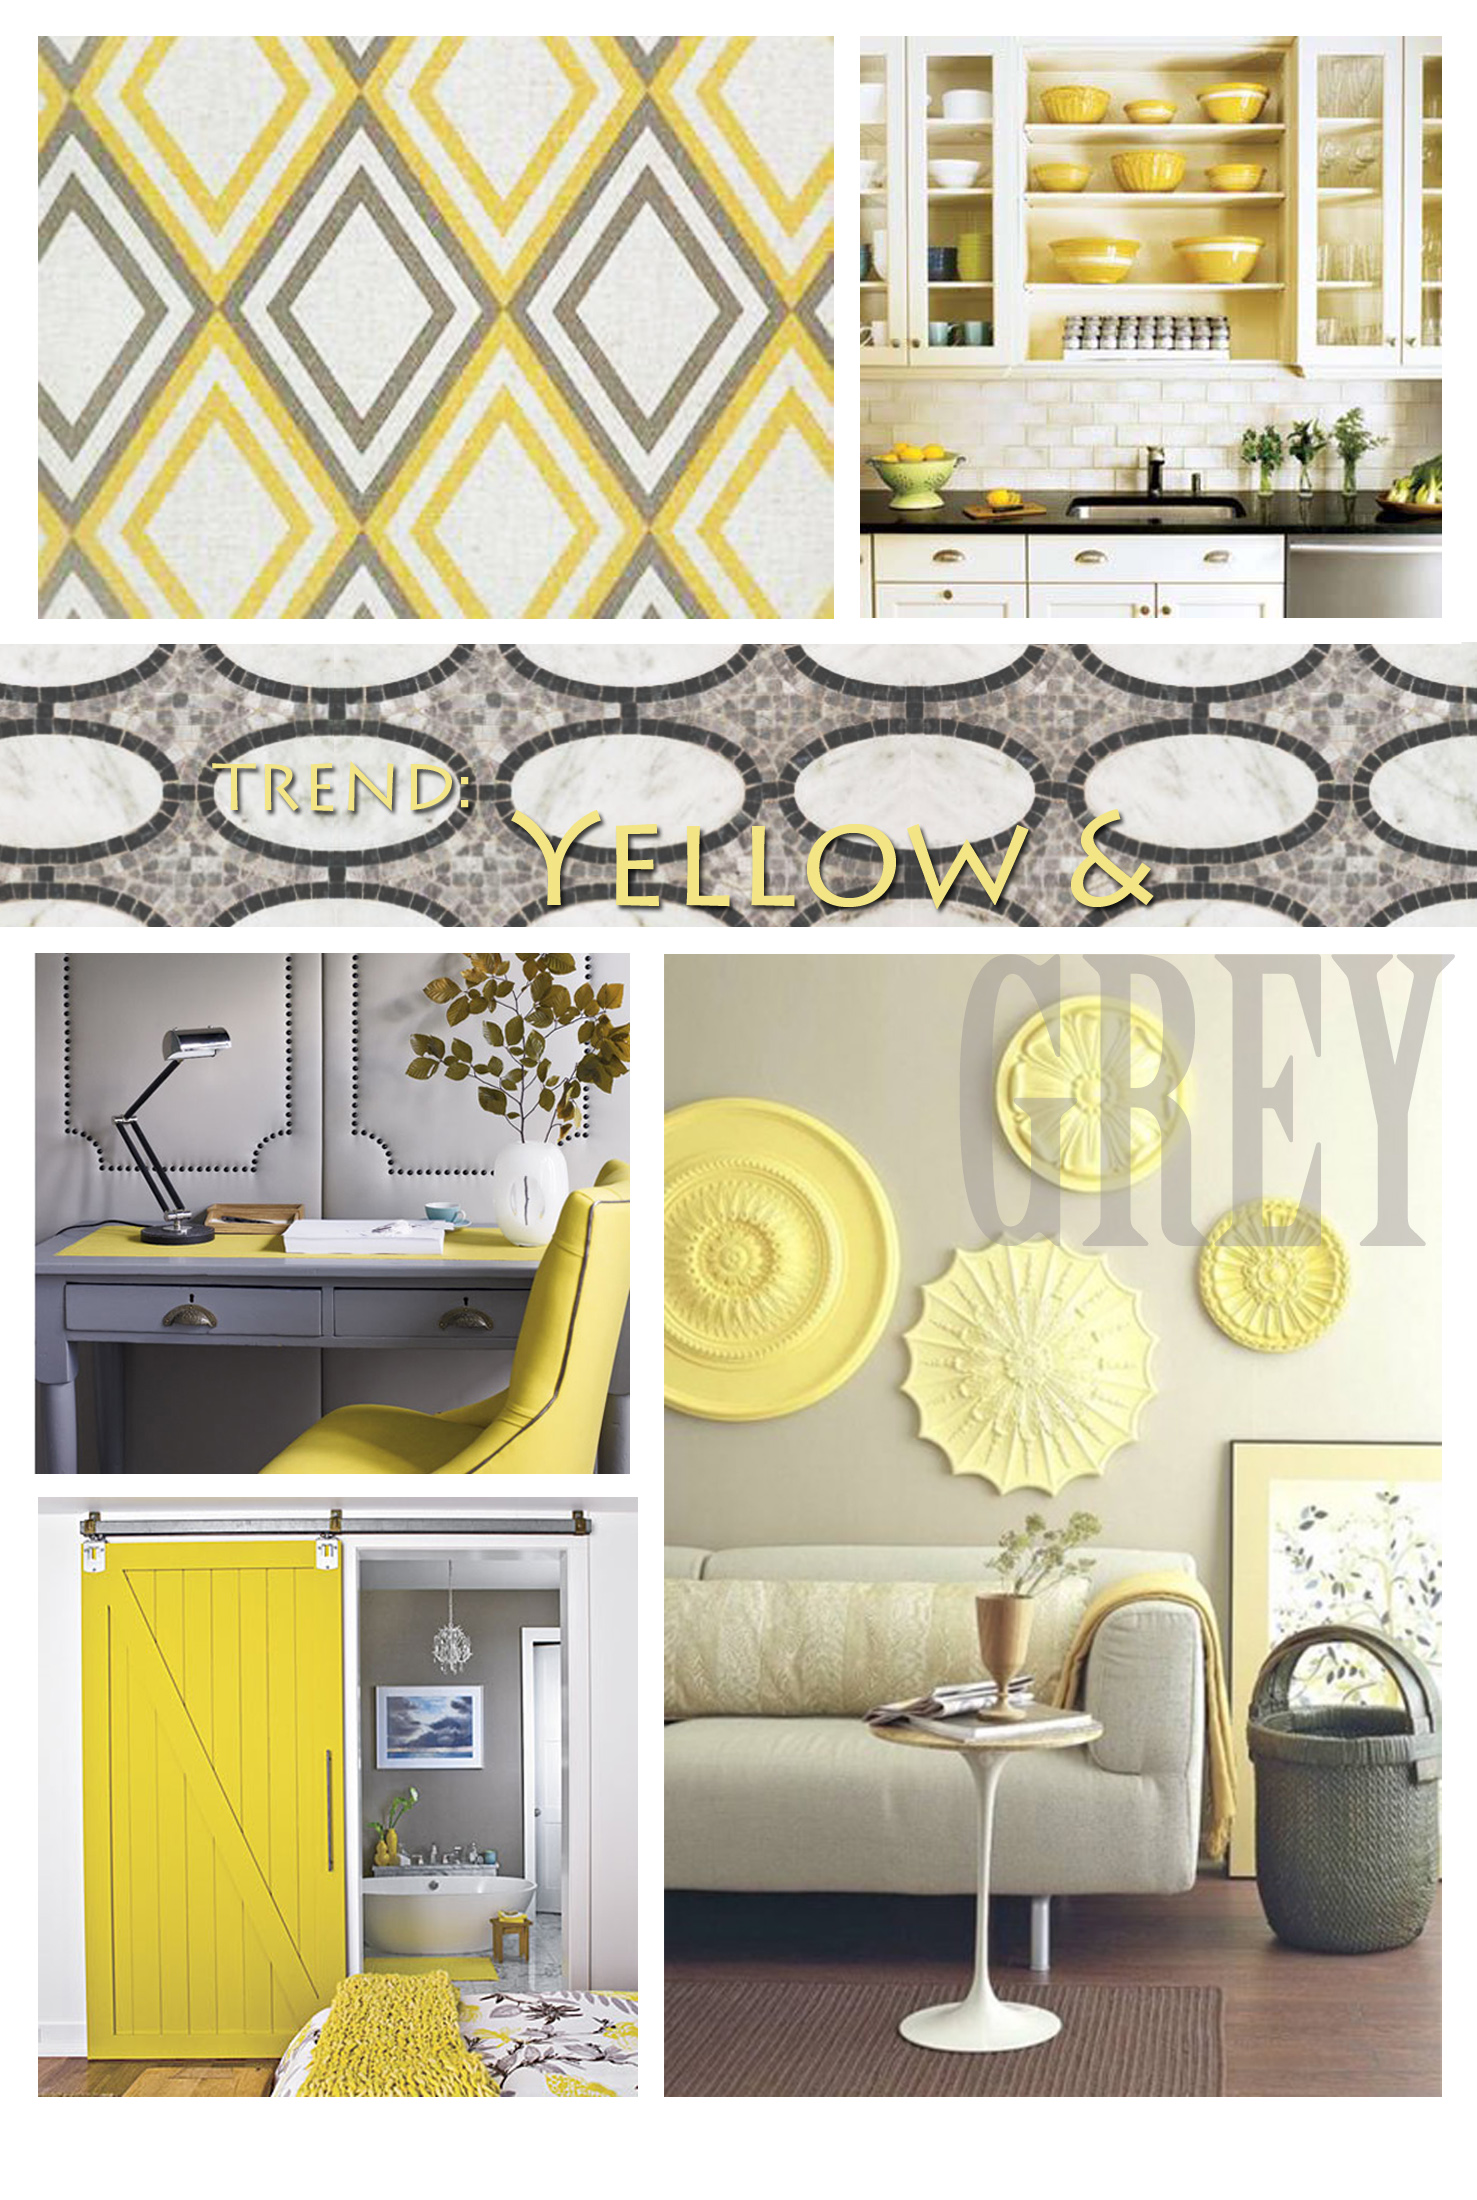 Light yellow and grey bedroom - Thinking About A Grey Accent Wall For A Yellow Bedroom In Our Home Love These Colors Together Master Bedroom Pinterest